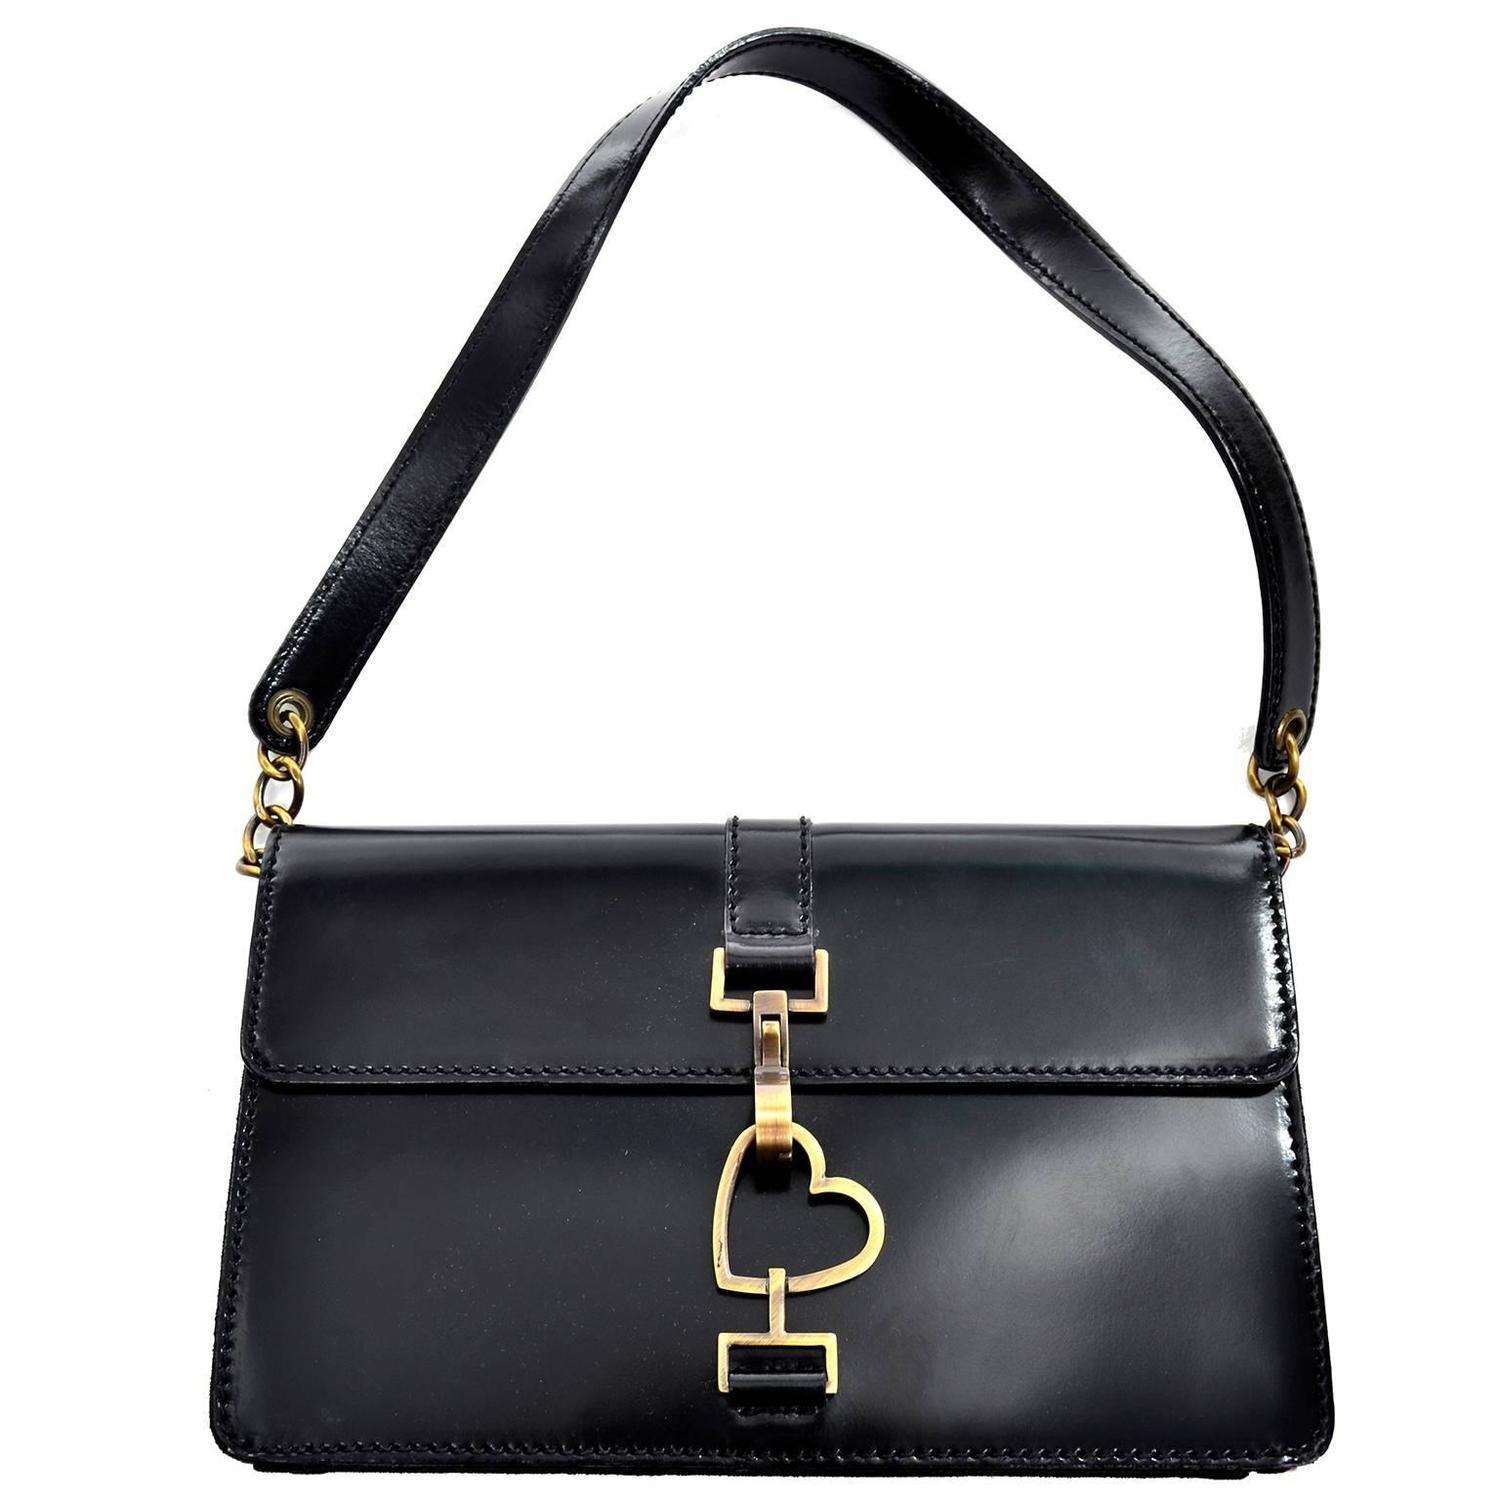 a3c0defe90 Moschino Vintage Rare Iconic Black Patent Leather Heart Bag at 1stdibs